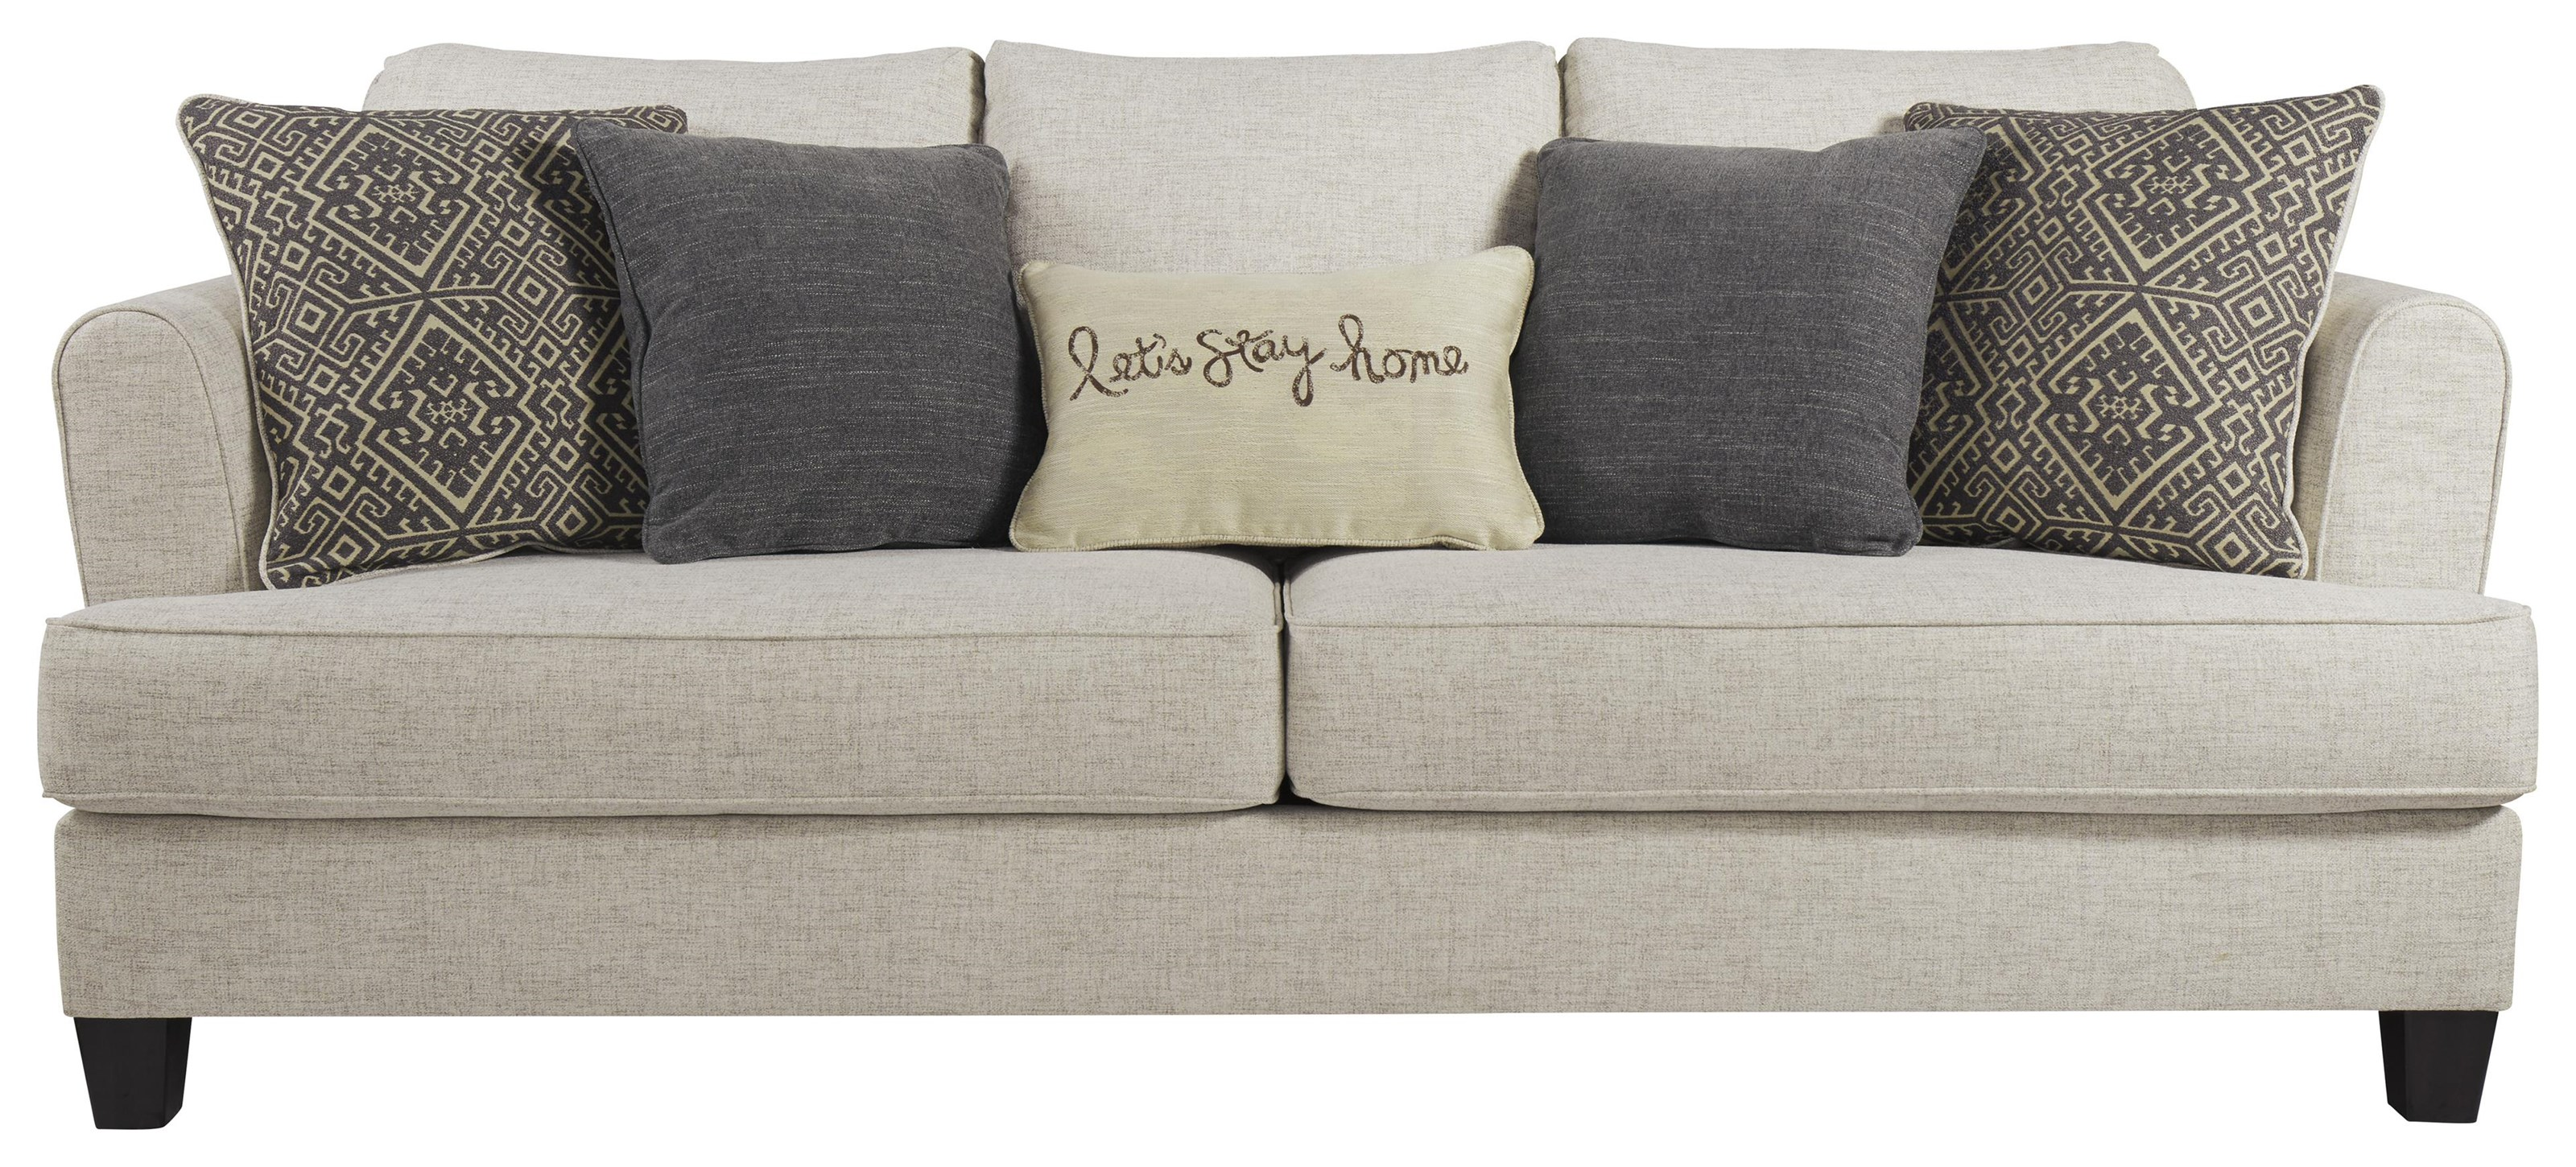 Alcona Sofa by Ashley Furniture at Sam Levitz Outlet